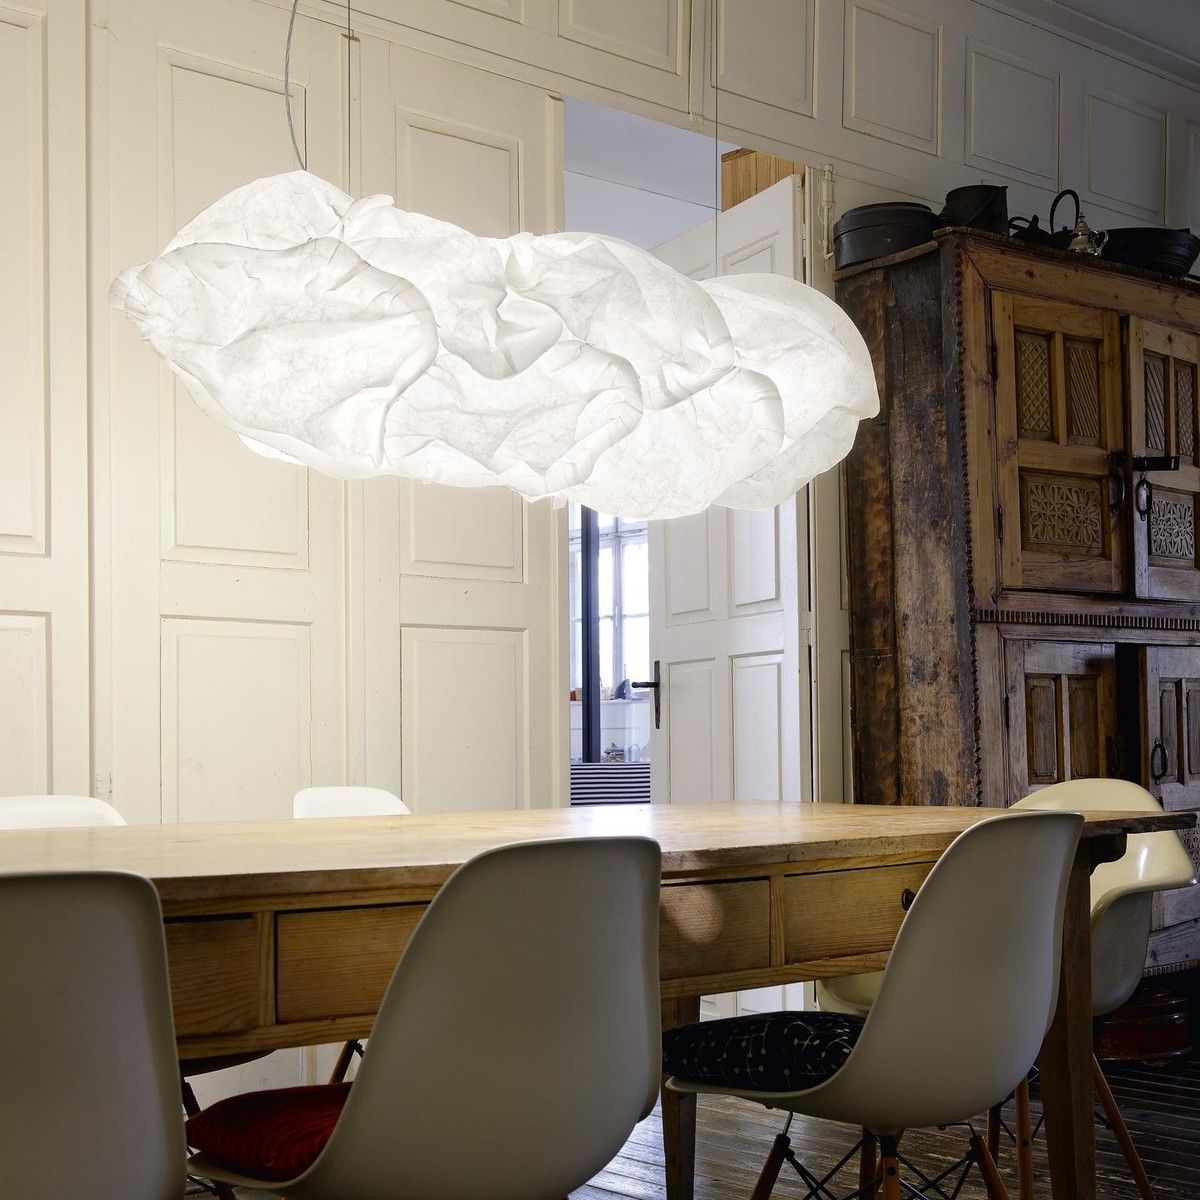 Cloud XL 60 Suspension Lamp Belux AmbienteDirectcom : none1200x1200 ID540167 0cefb3043051d04c57bb041539f2c480 from www.ambientedirect.com size 1200 x 1200 jpeg 244kB